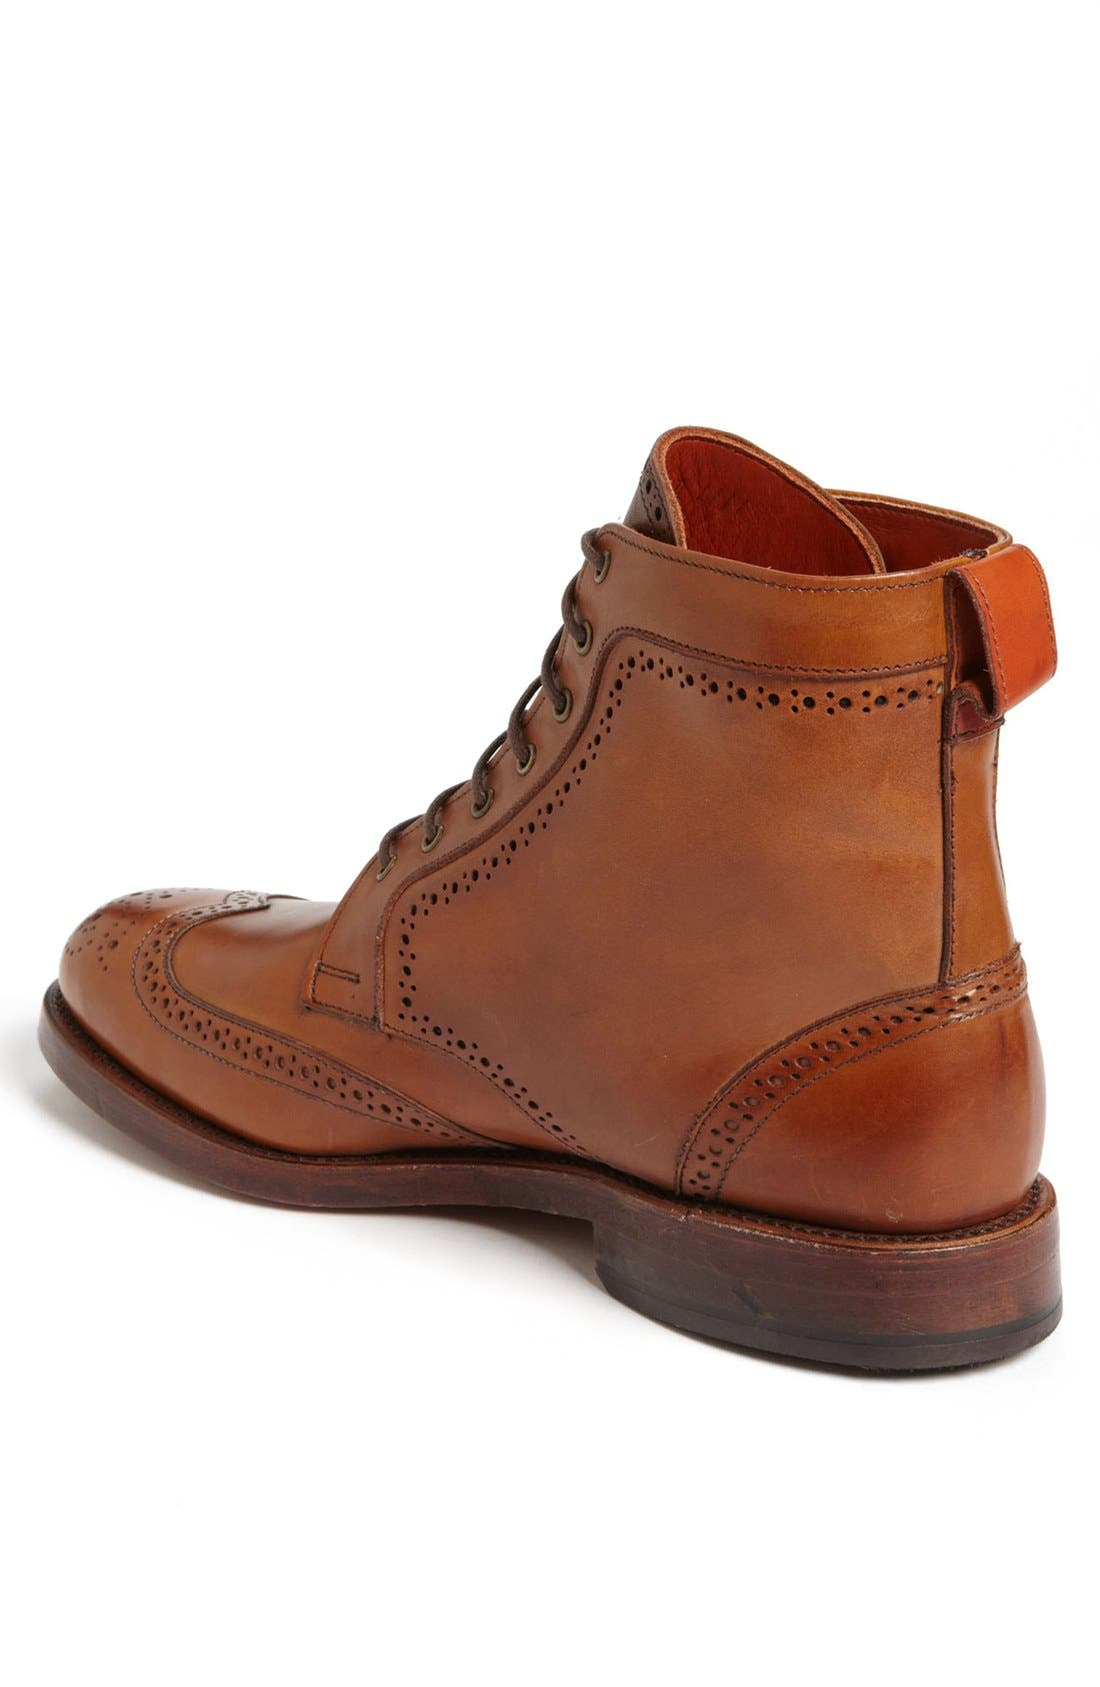 'Dalton' Water Resistant Wingtip Boot,                             Alternate thumbnail 2, color,                             Burnished Walnut Leather